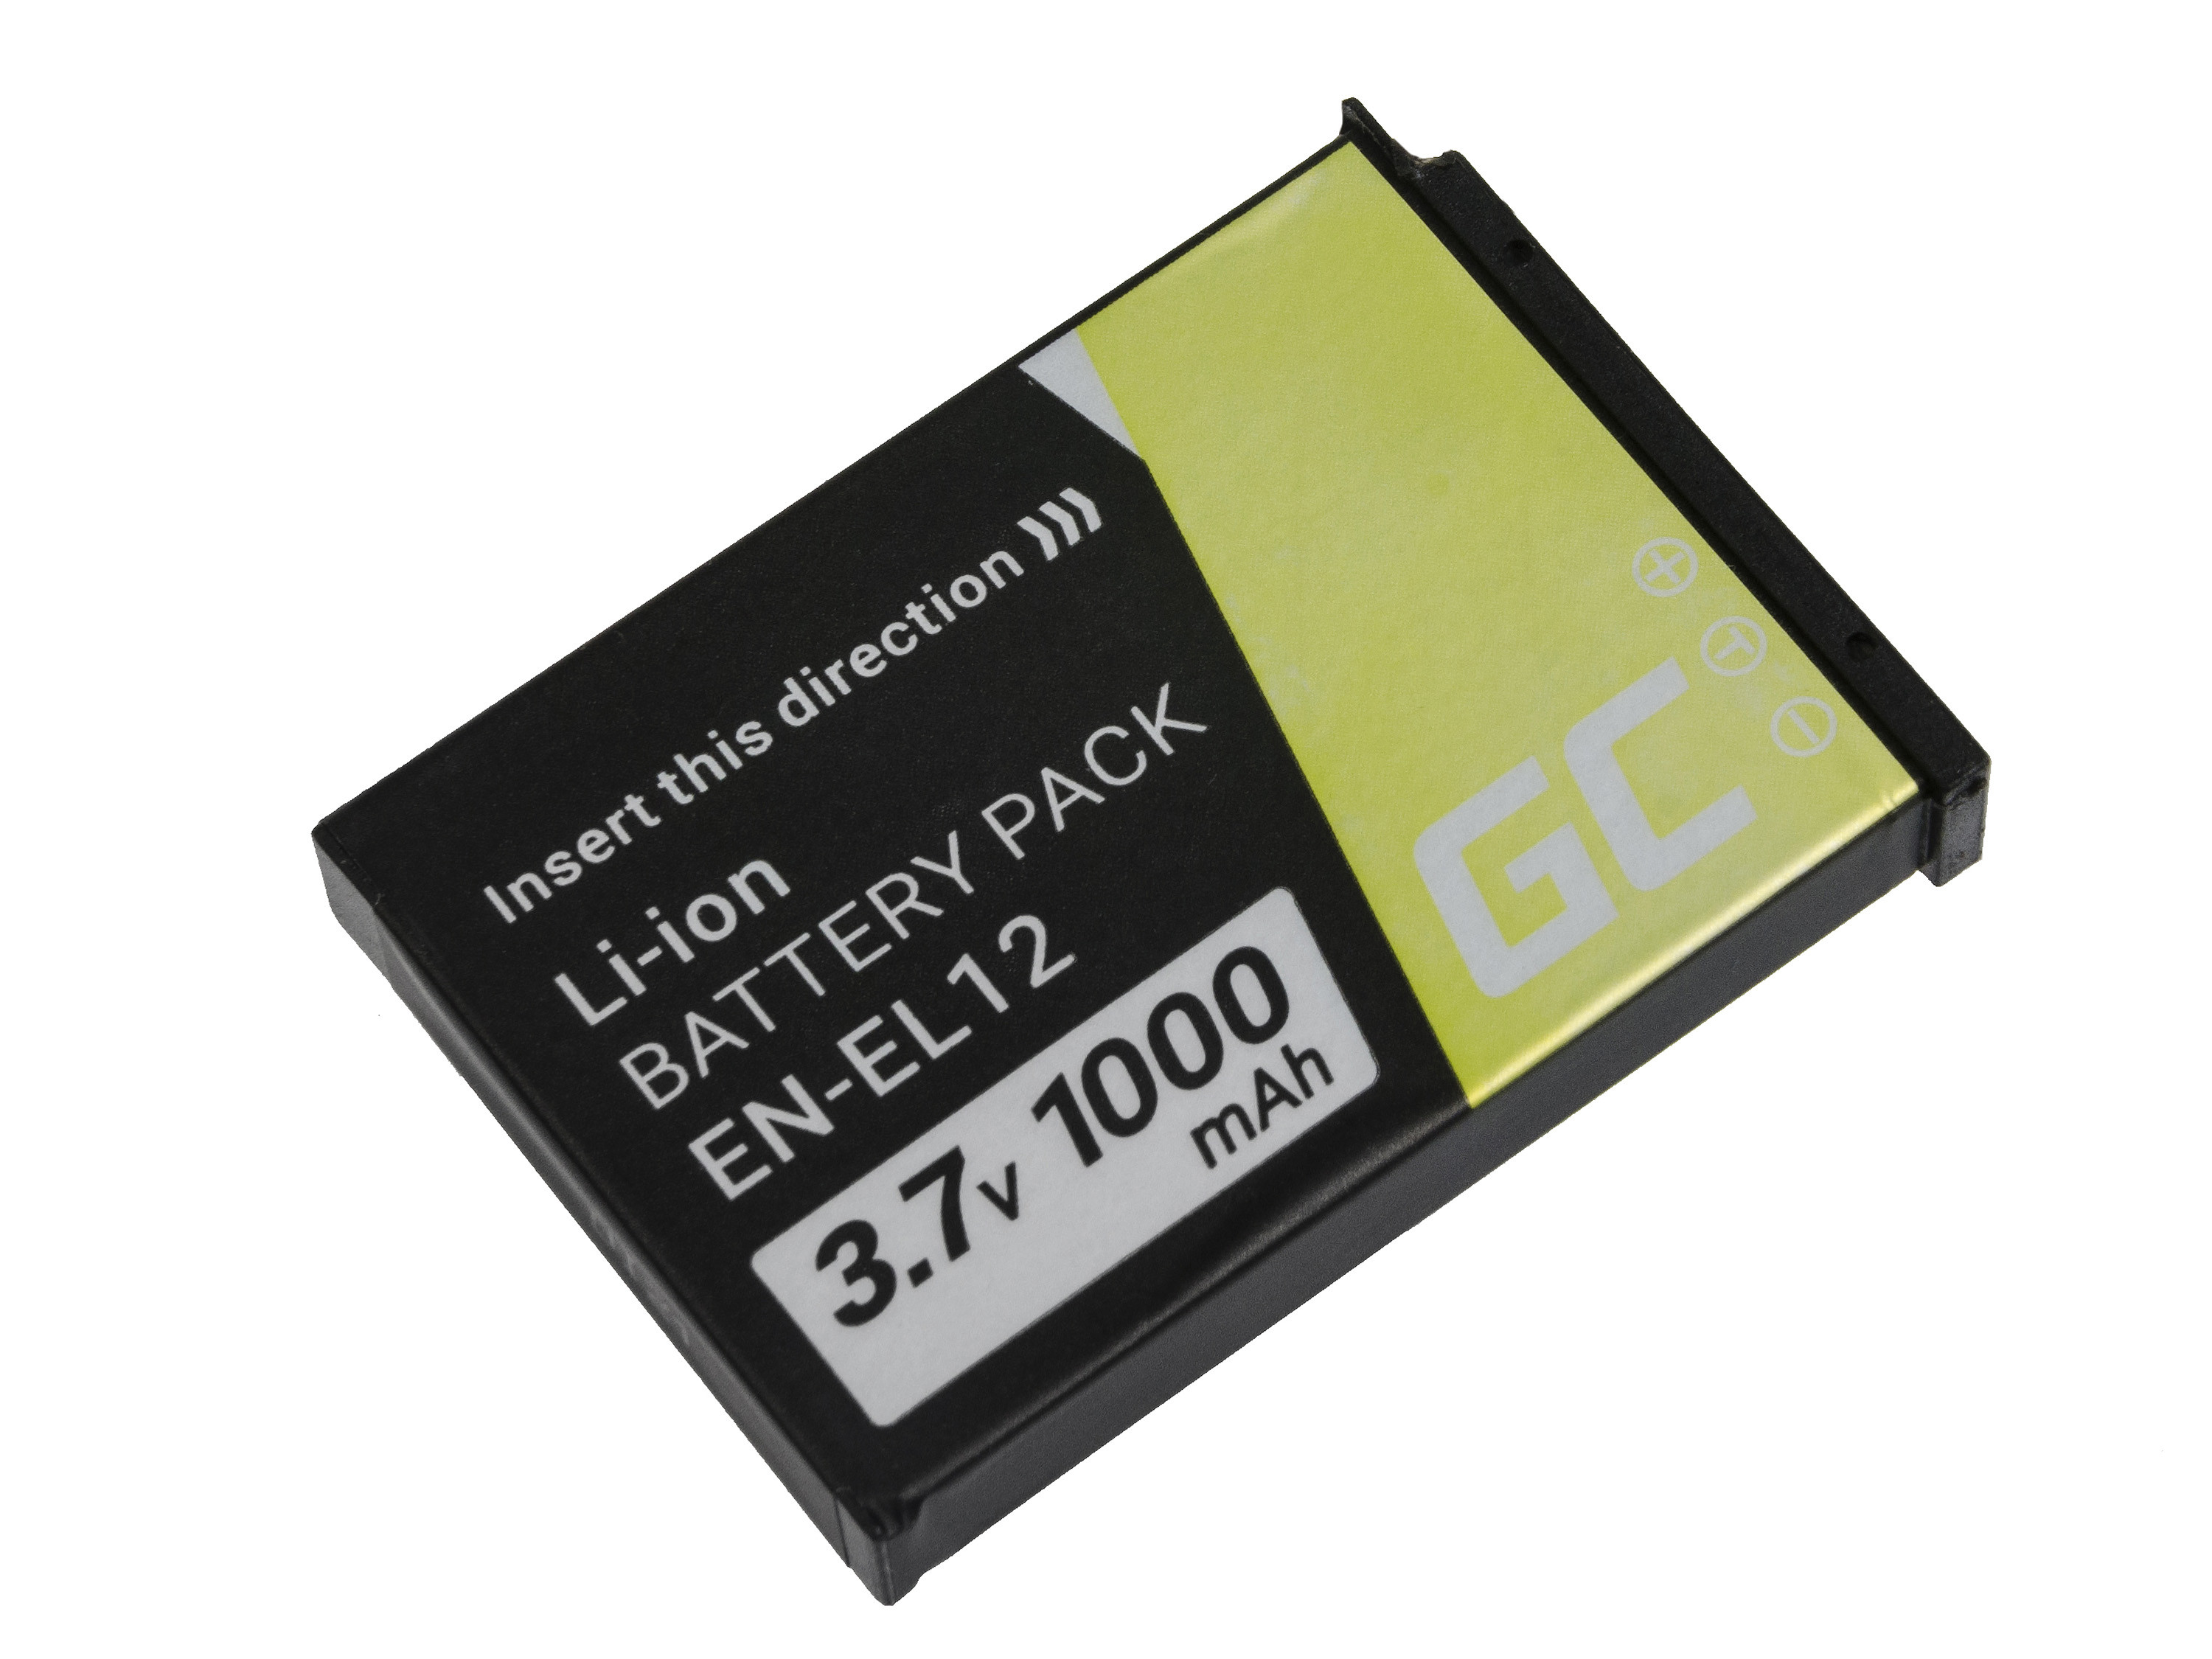 Green Cell Baterie pro Nikon Coolpix AW100 AW110 AW120 S9500 S9300 S9200 S9100 S8200 S8100 S6300 3.7V 1000mAh